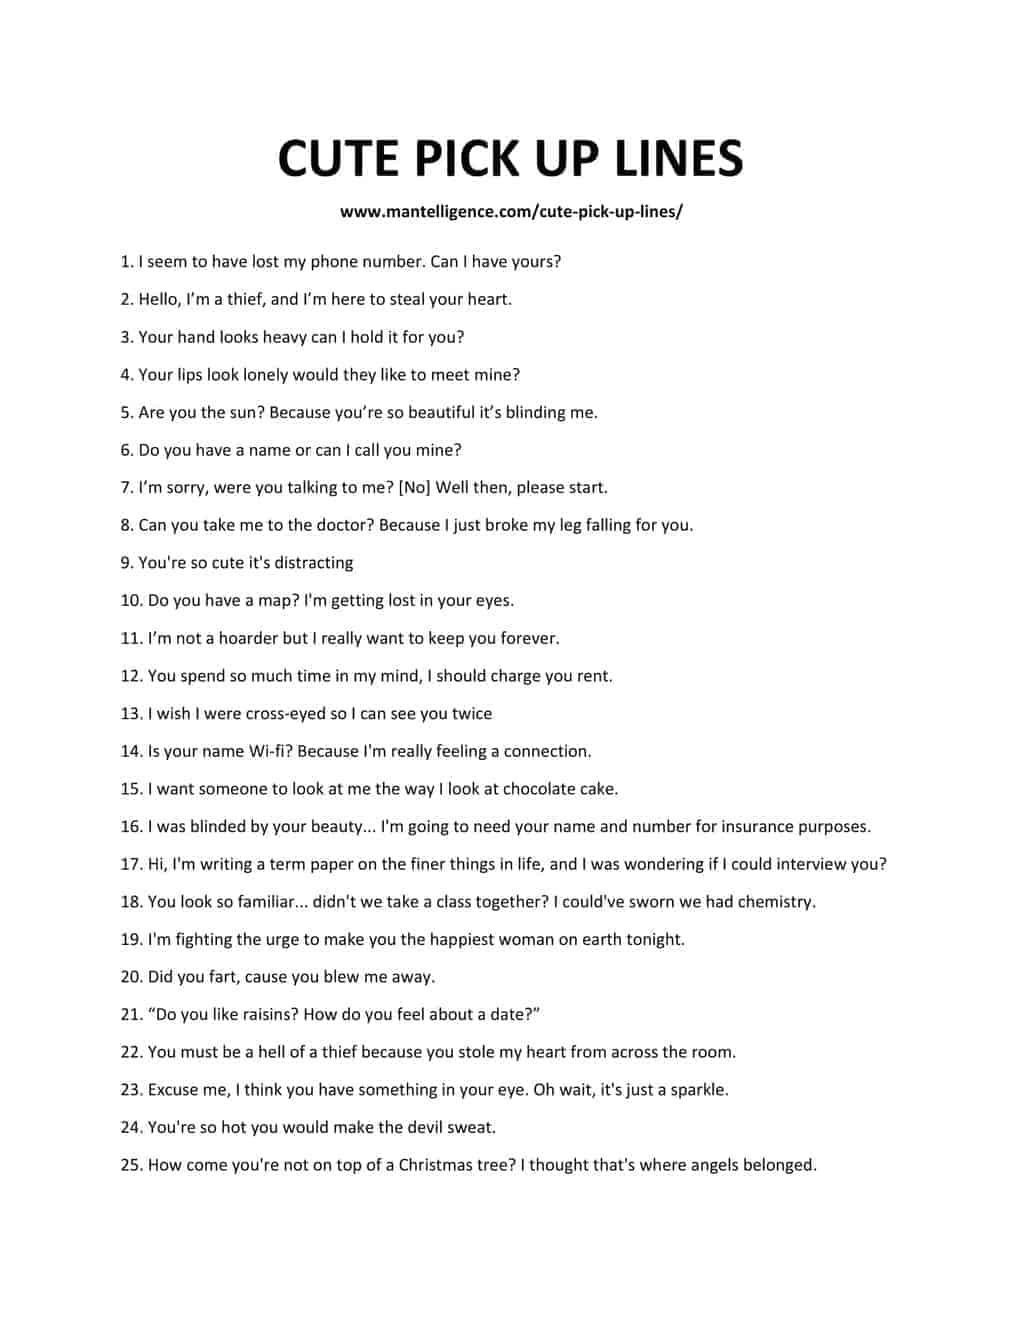 82 Best Cute Pick Up Lines These Lines Will Make Her Smile